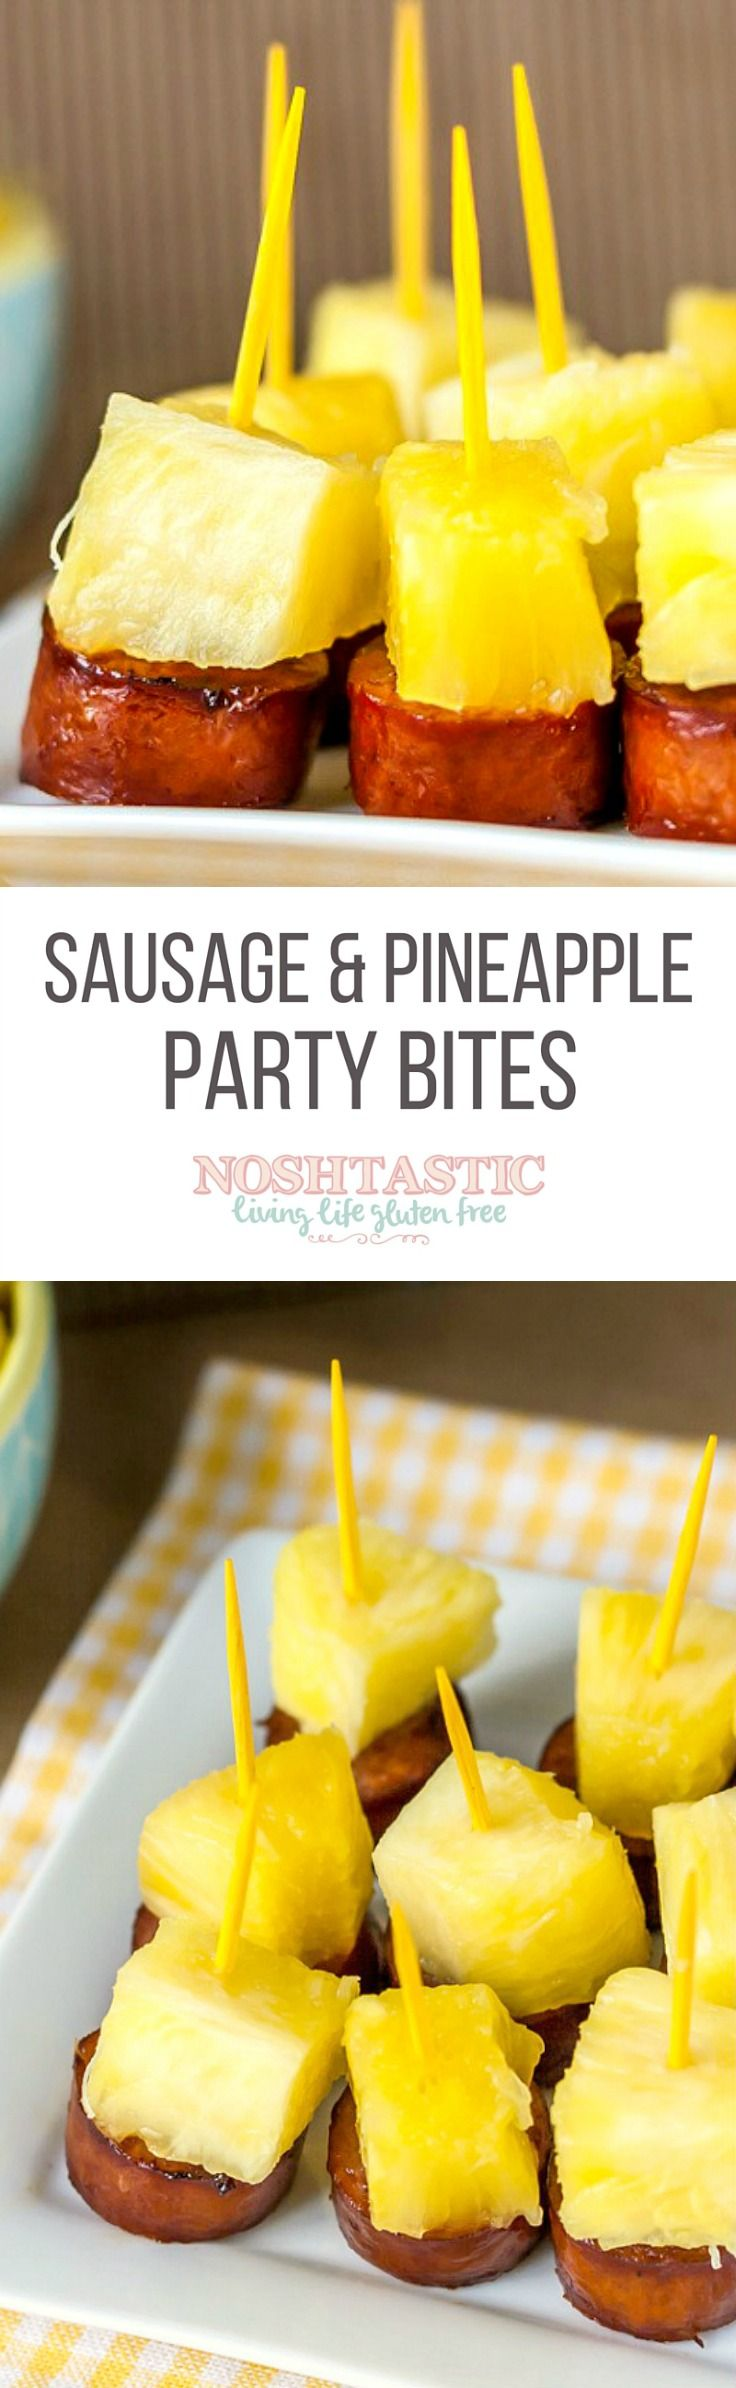 These fun little Sausage and Pineapple Party Bites are easy to make in a hurry a…